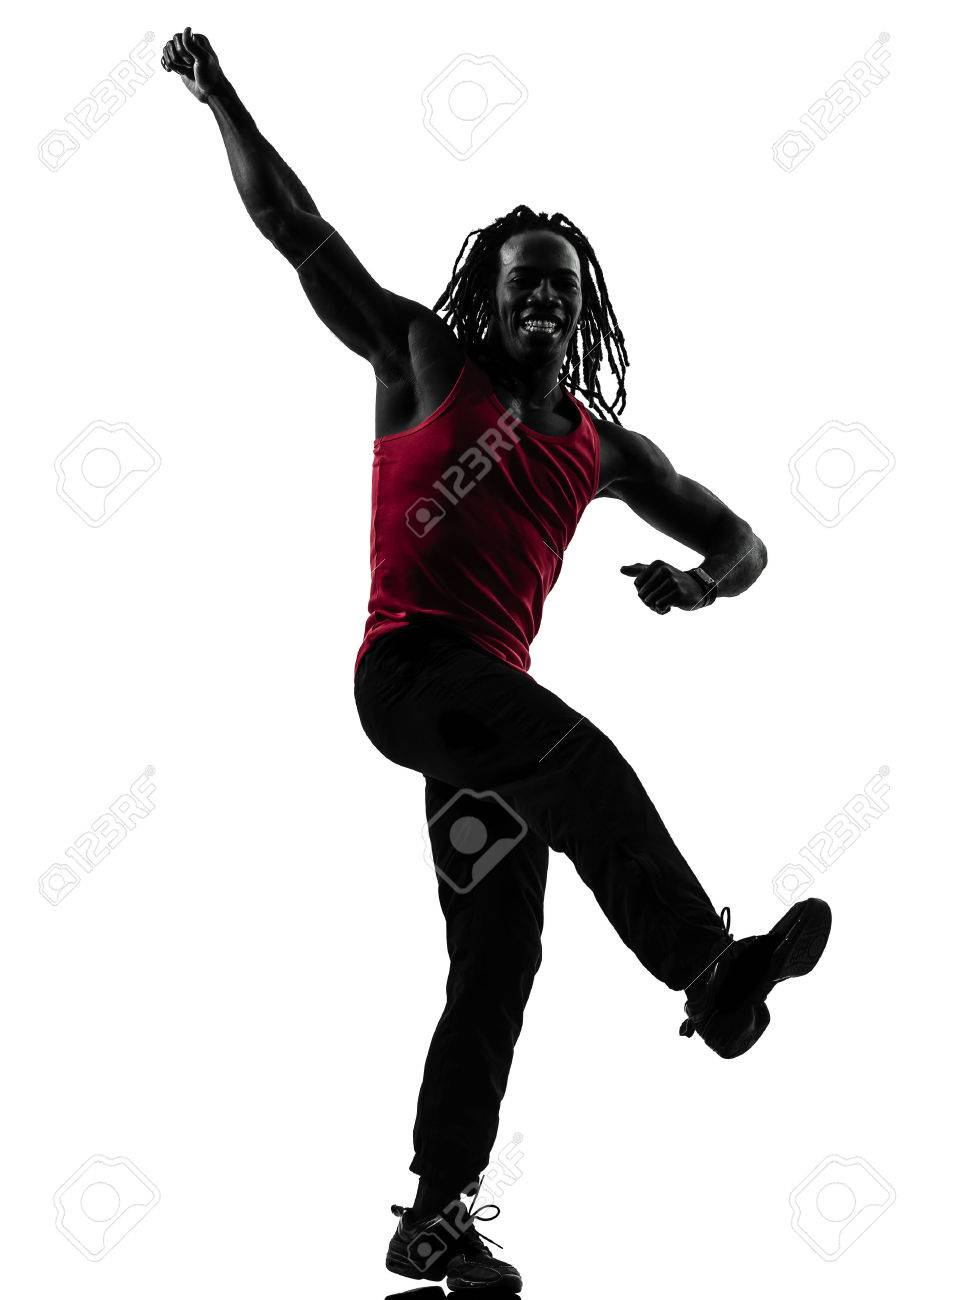 one african man exercising fitness zumba dancing  in silhouette  on white background Stock Photo - 23449244